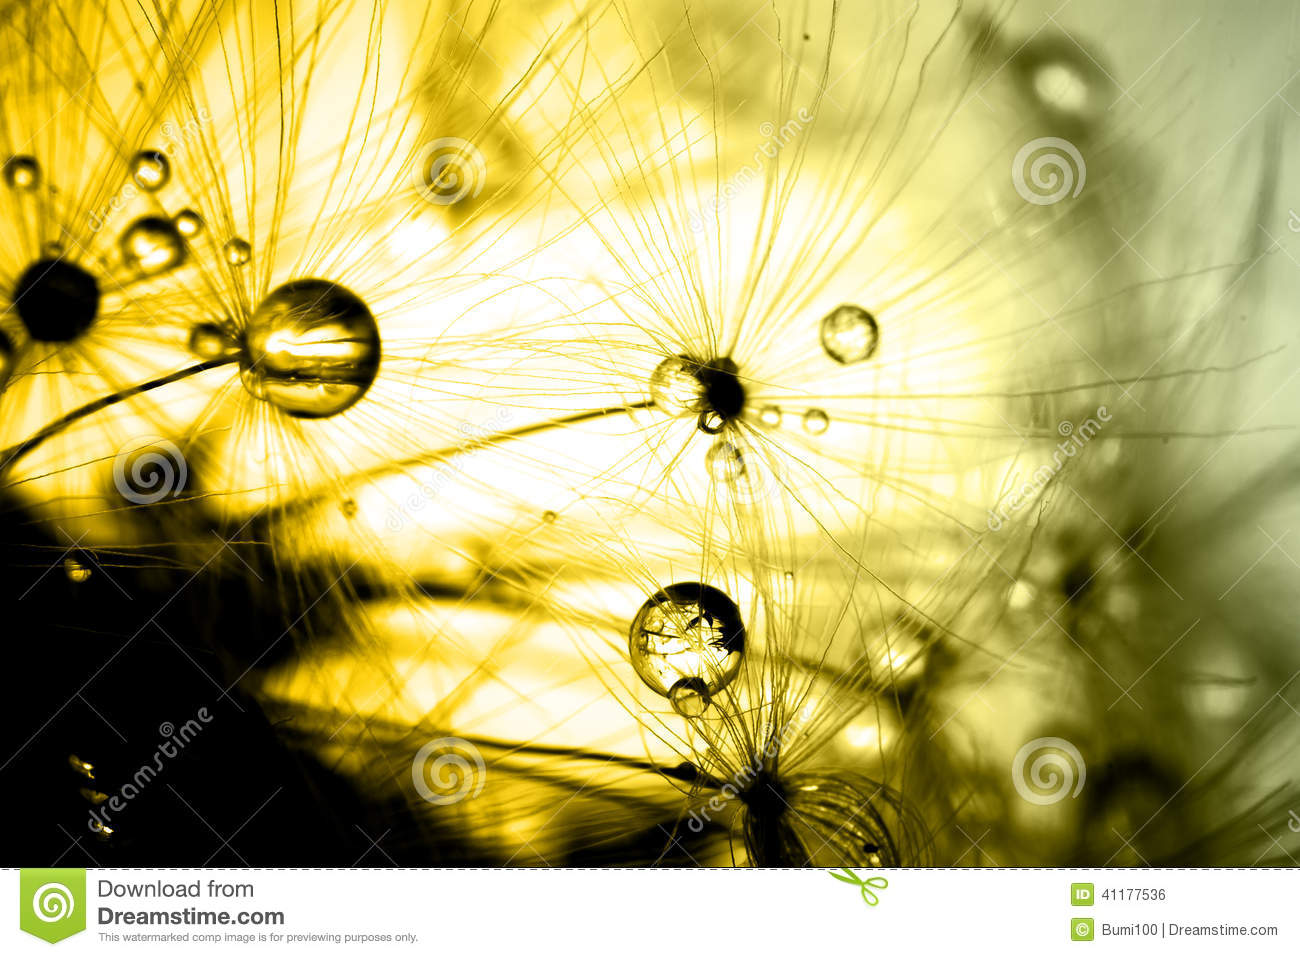 Download Abstract Colorize Macro Of Plant Seeds Dandelion Stock Photo - Image of closeup, abstract: 41177536